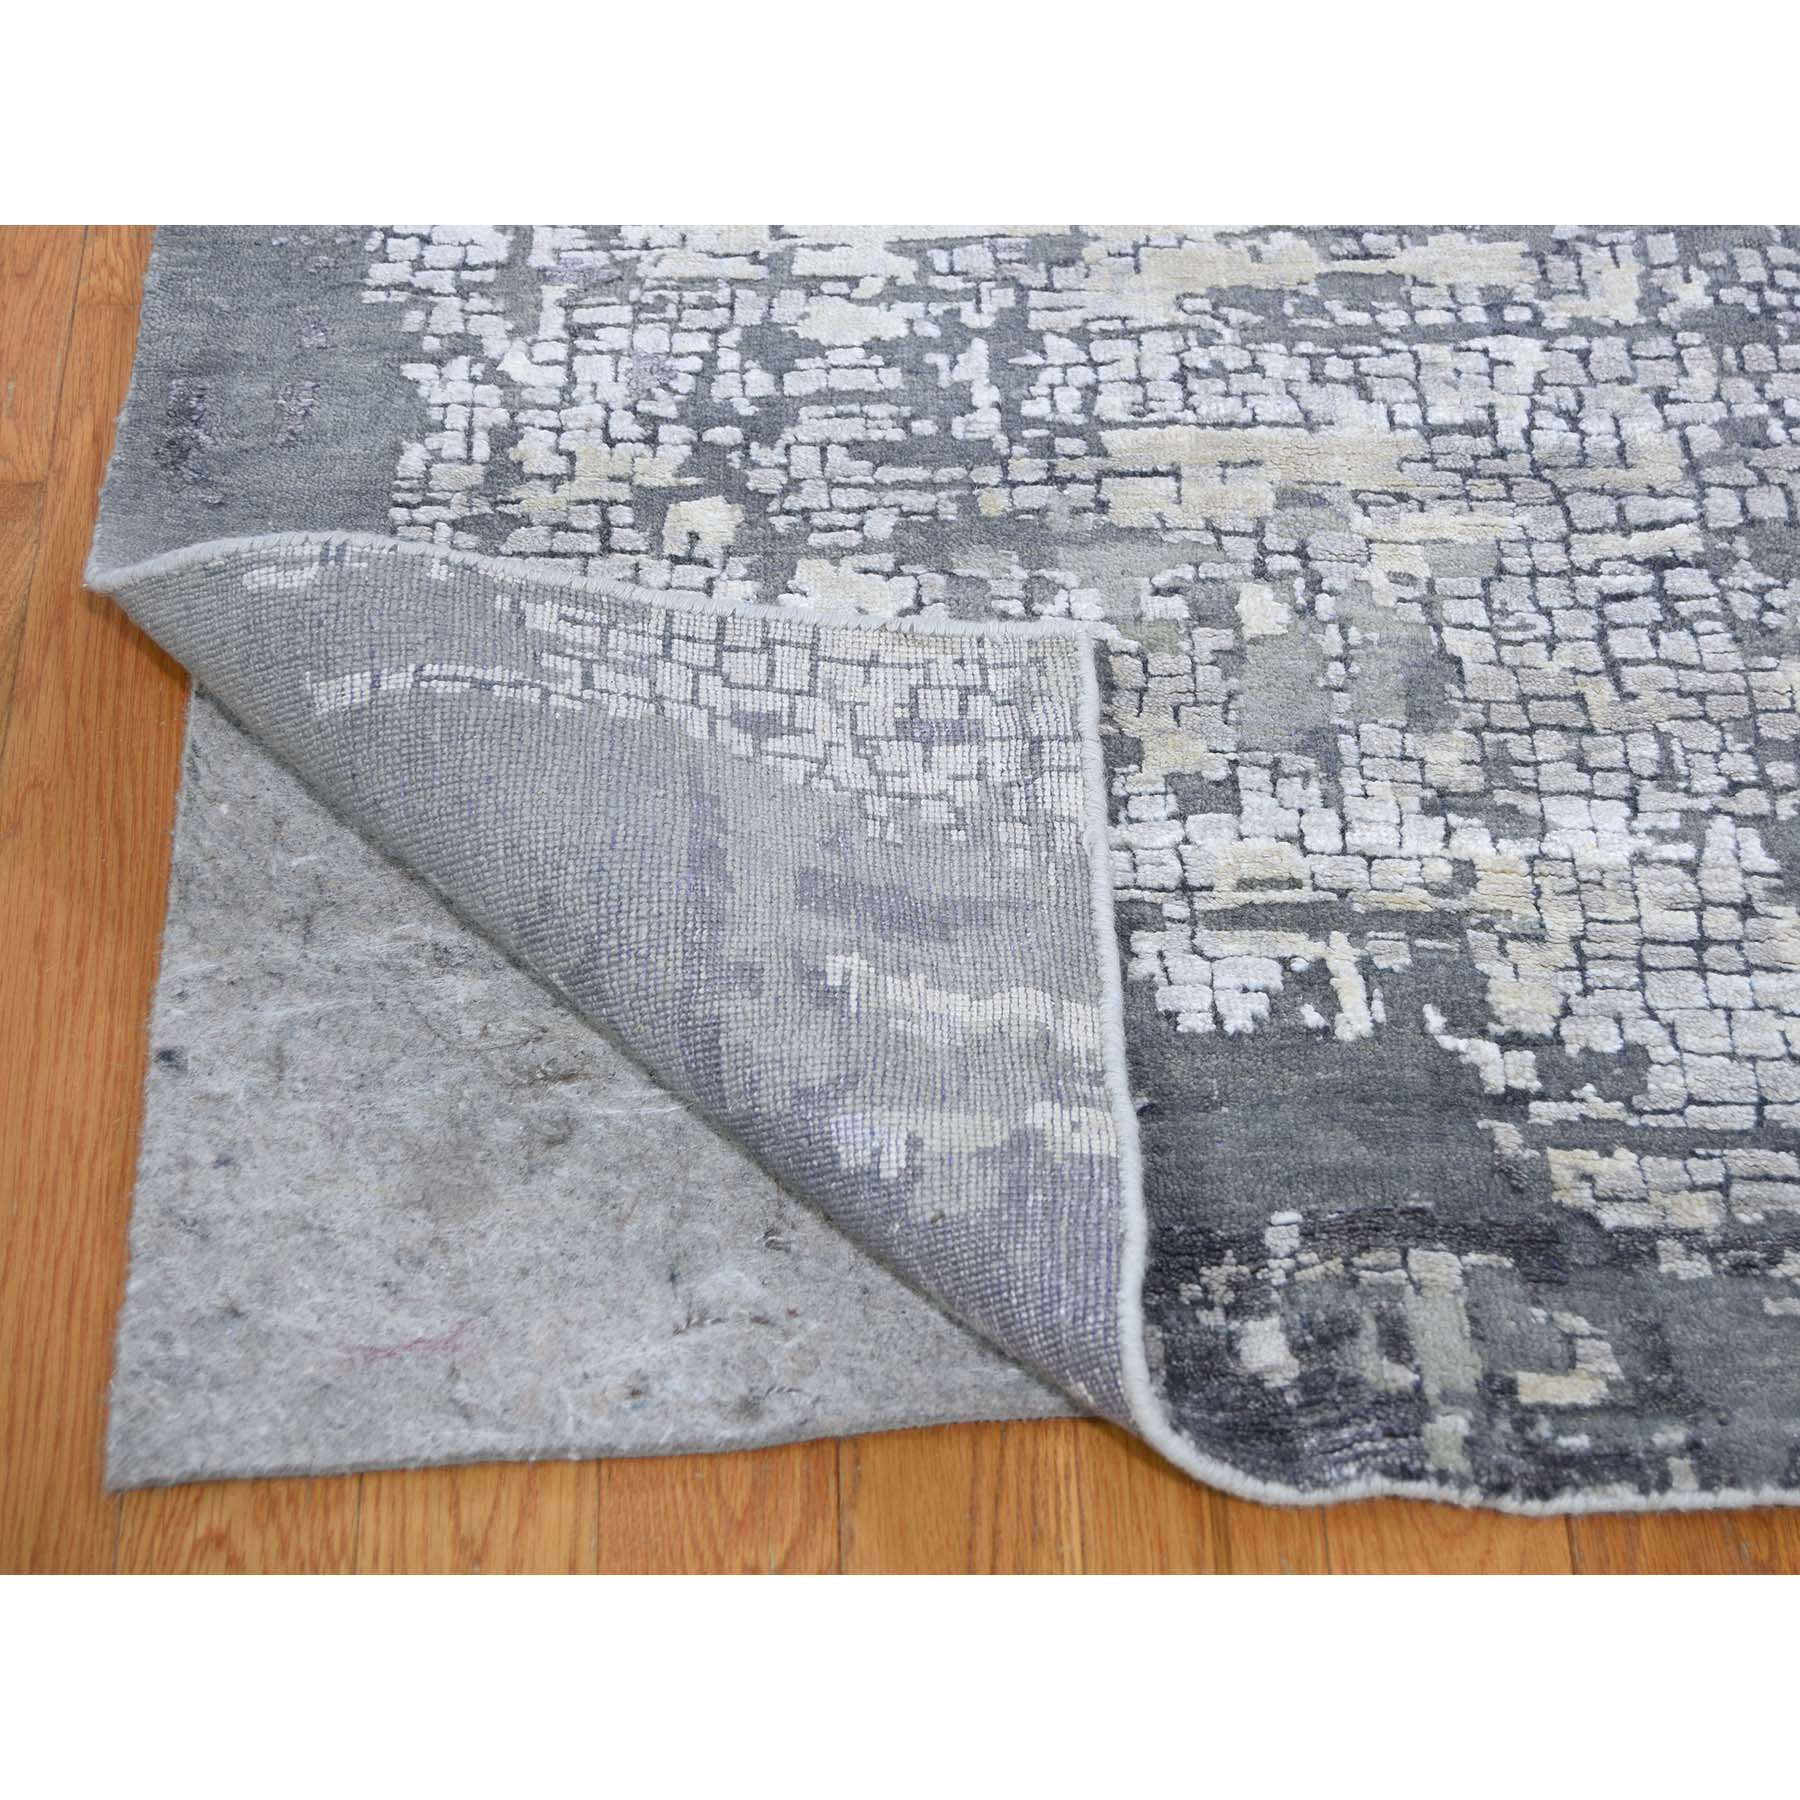 10-x13-9  Abstract Wool And Silk With Mosaic Design Hand-Knotted Modern Rug